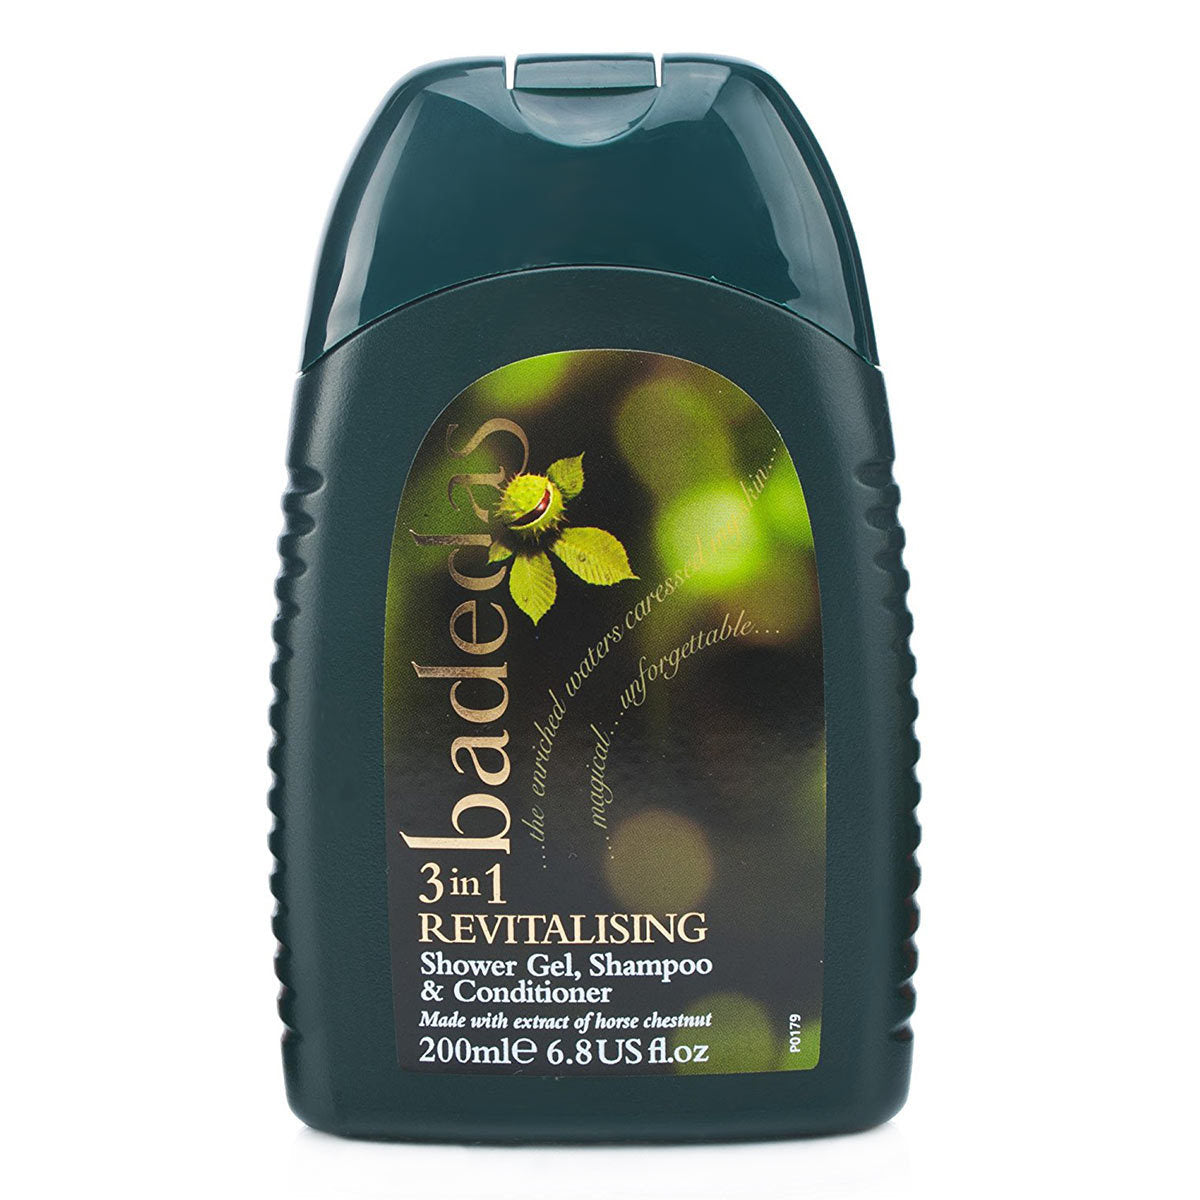 Badedas 3-in-1 Revitalizing Shower Gel